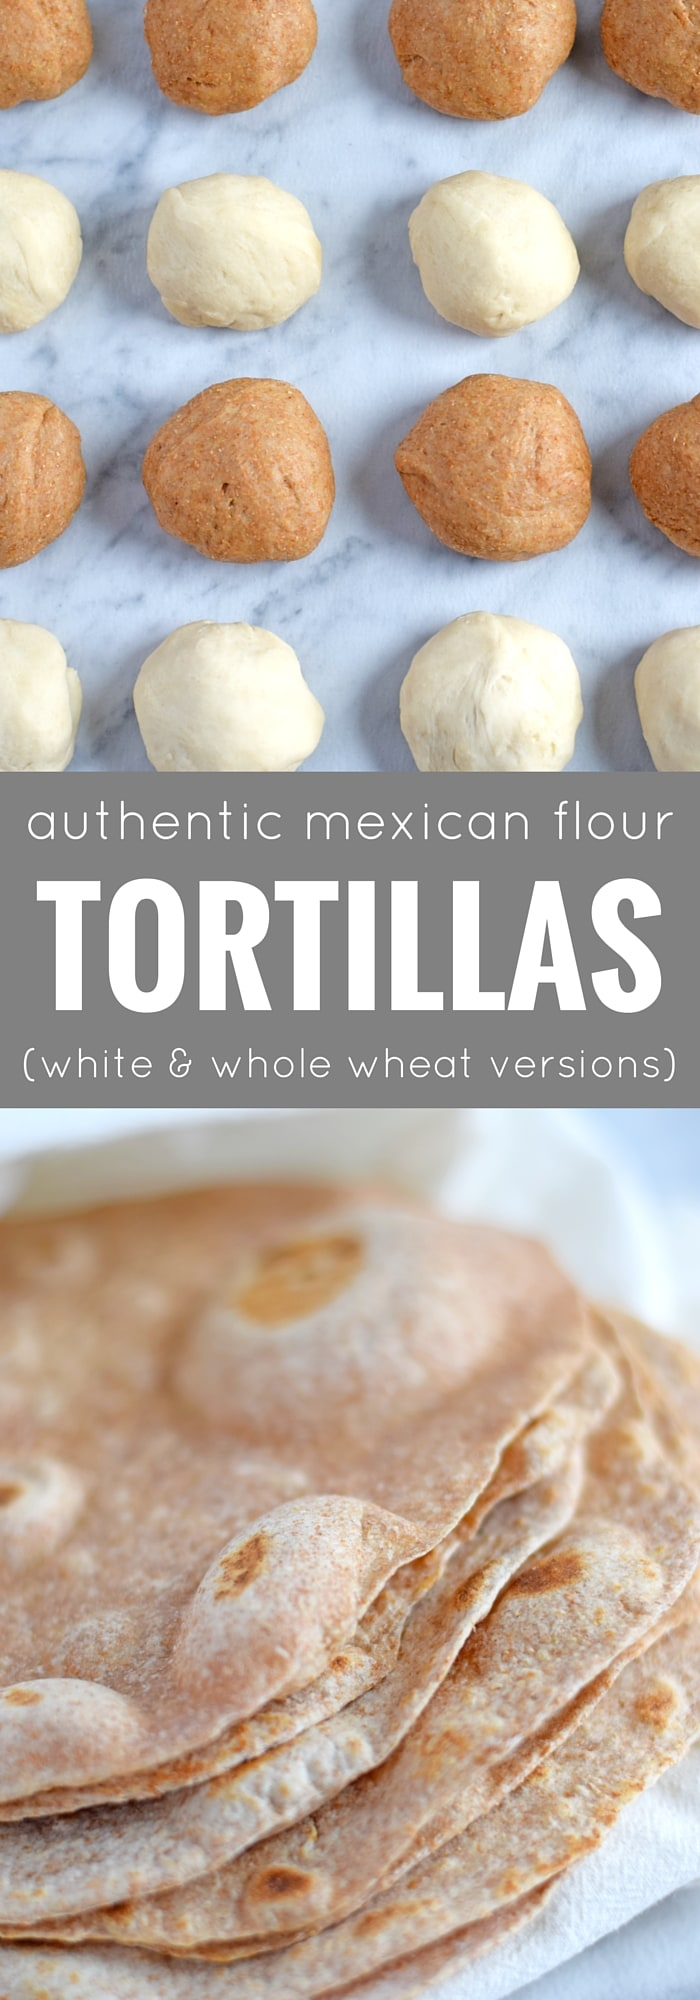 These Authentic Mexican Flour Tortillas are extremely versatile, made with 4 ingredients, dairy free and vegetarian friendly. They are way better than store-bought and can be used to make burritos, wraps, quesadillas, tacos and more! - isabeleats.com